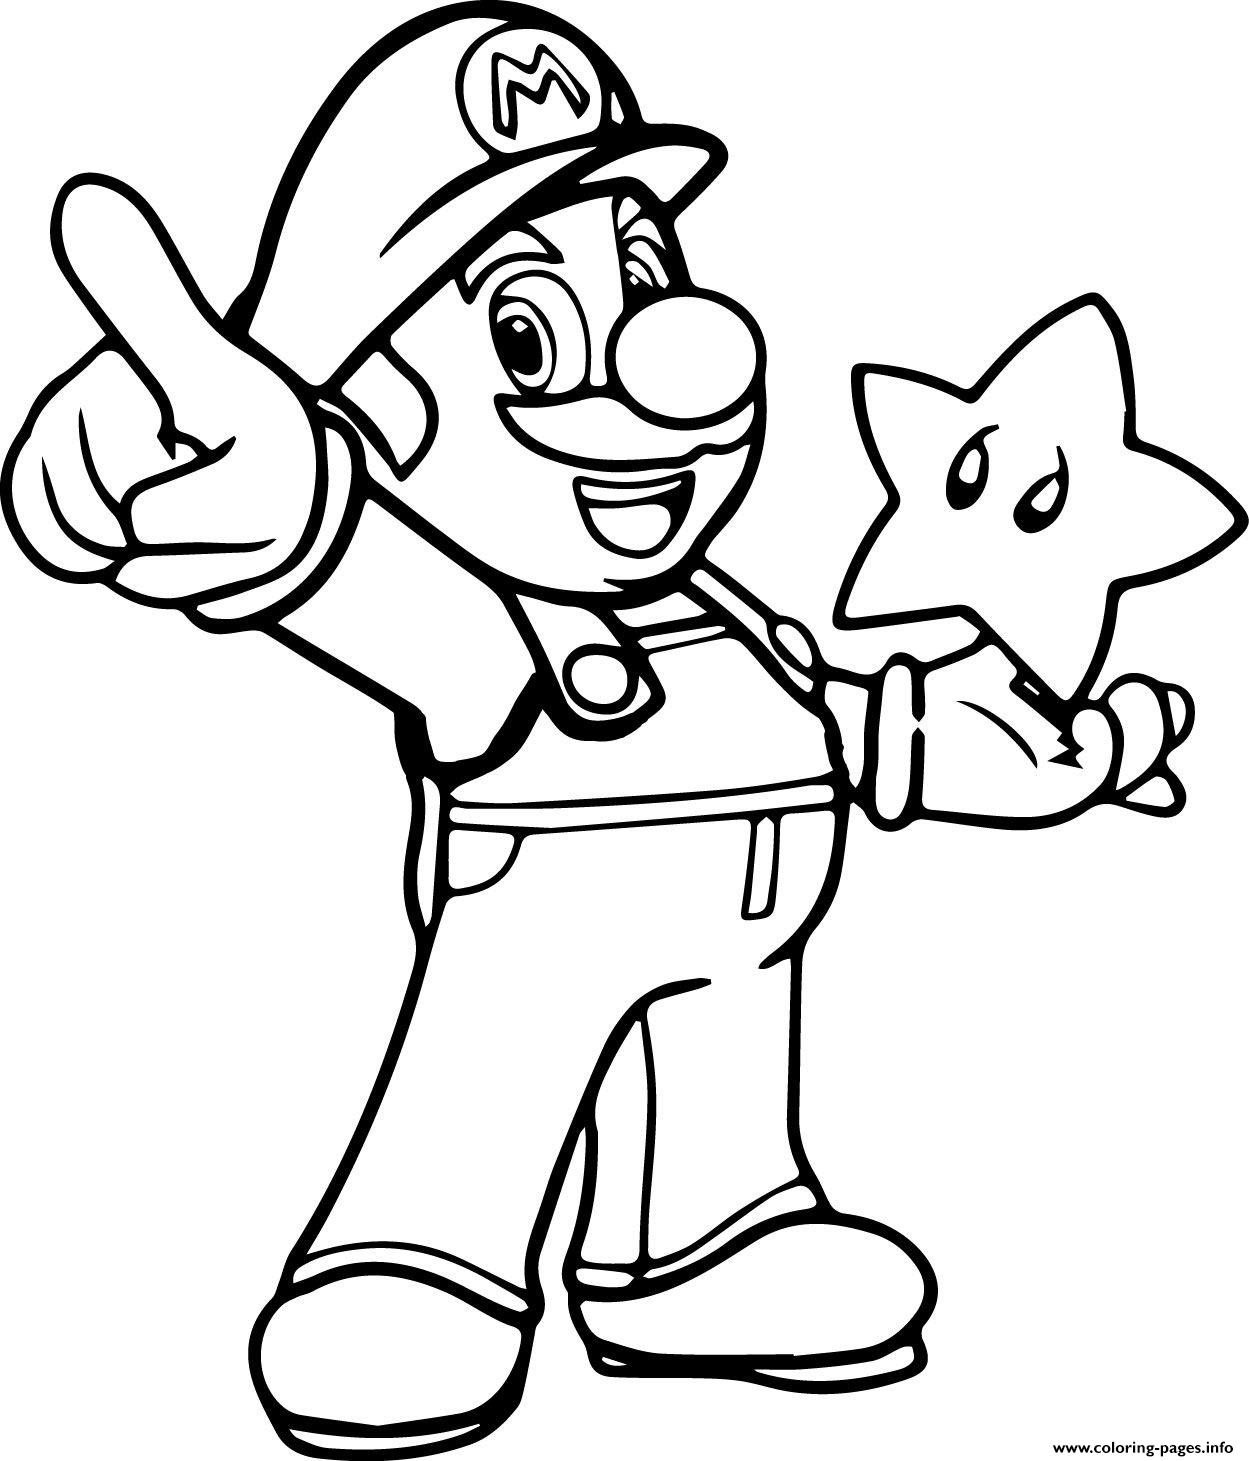 mario pictures to print mario coloring pages free download on clipartmag mario print to pictures